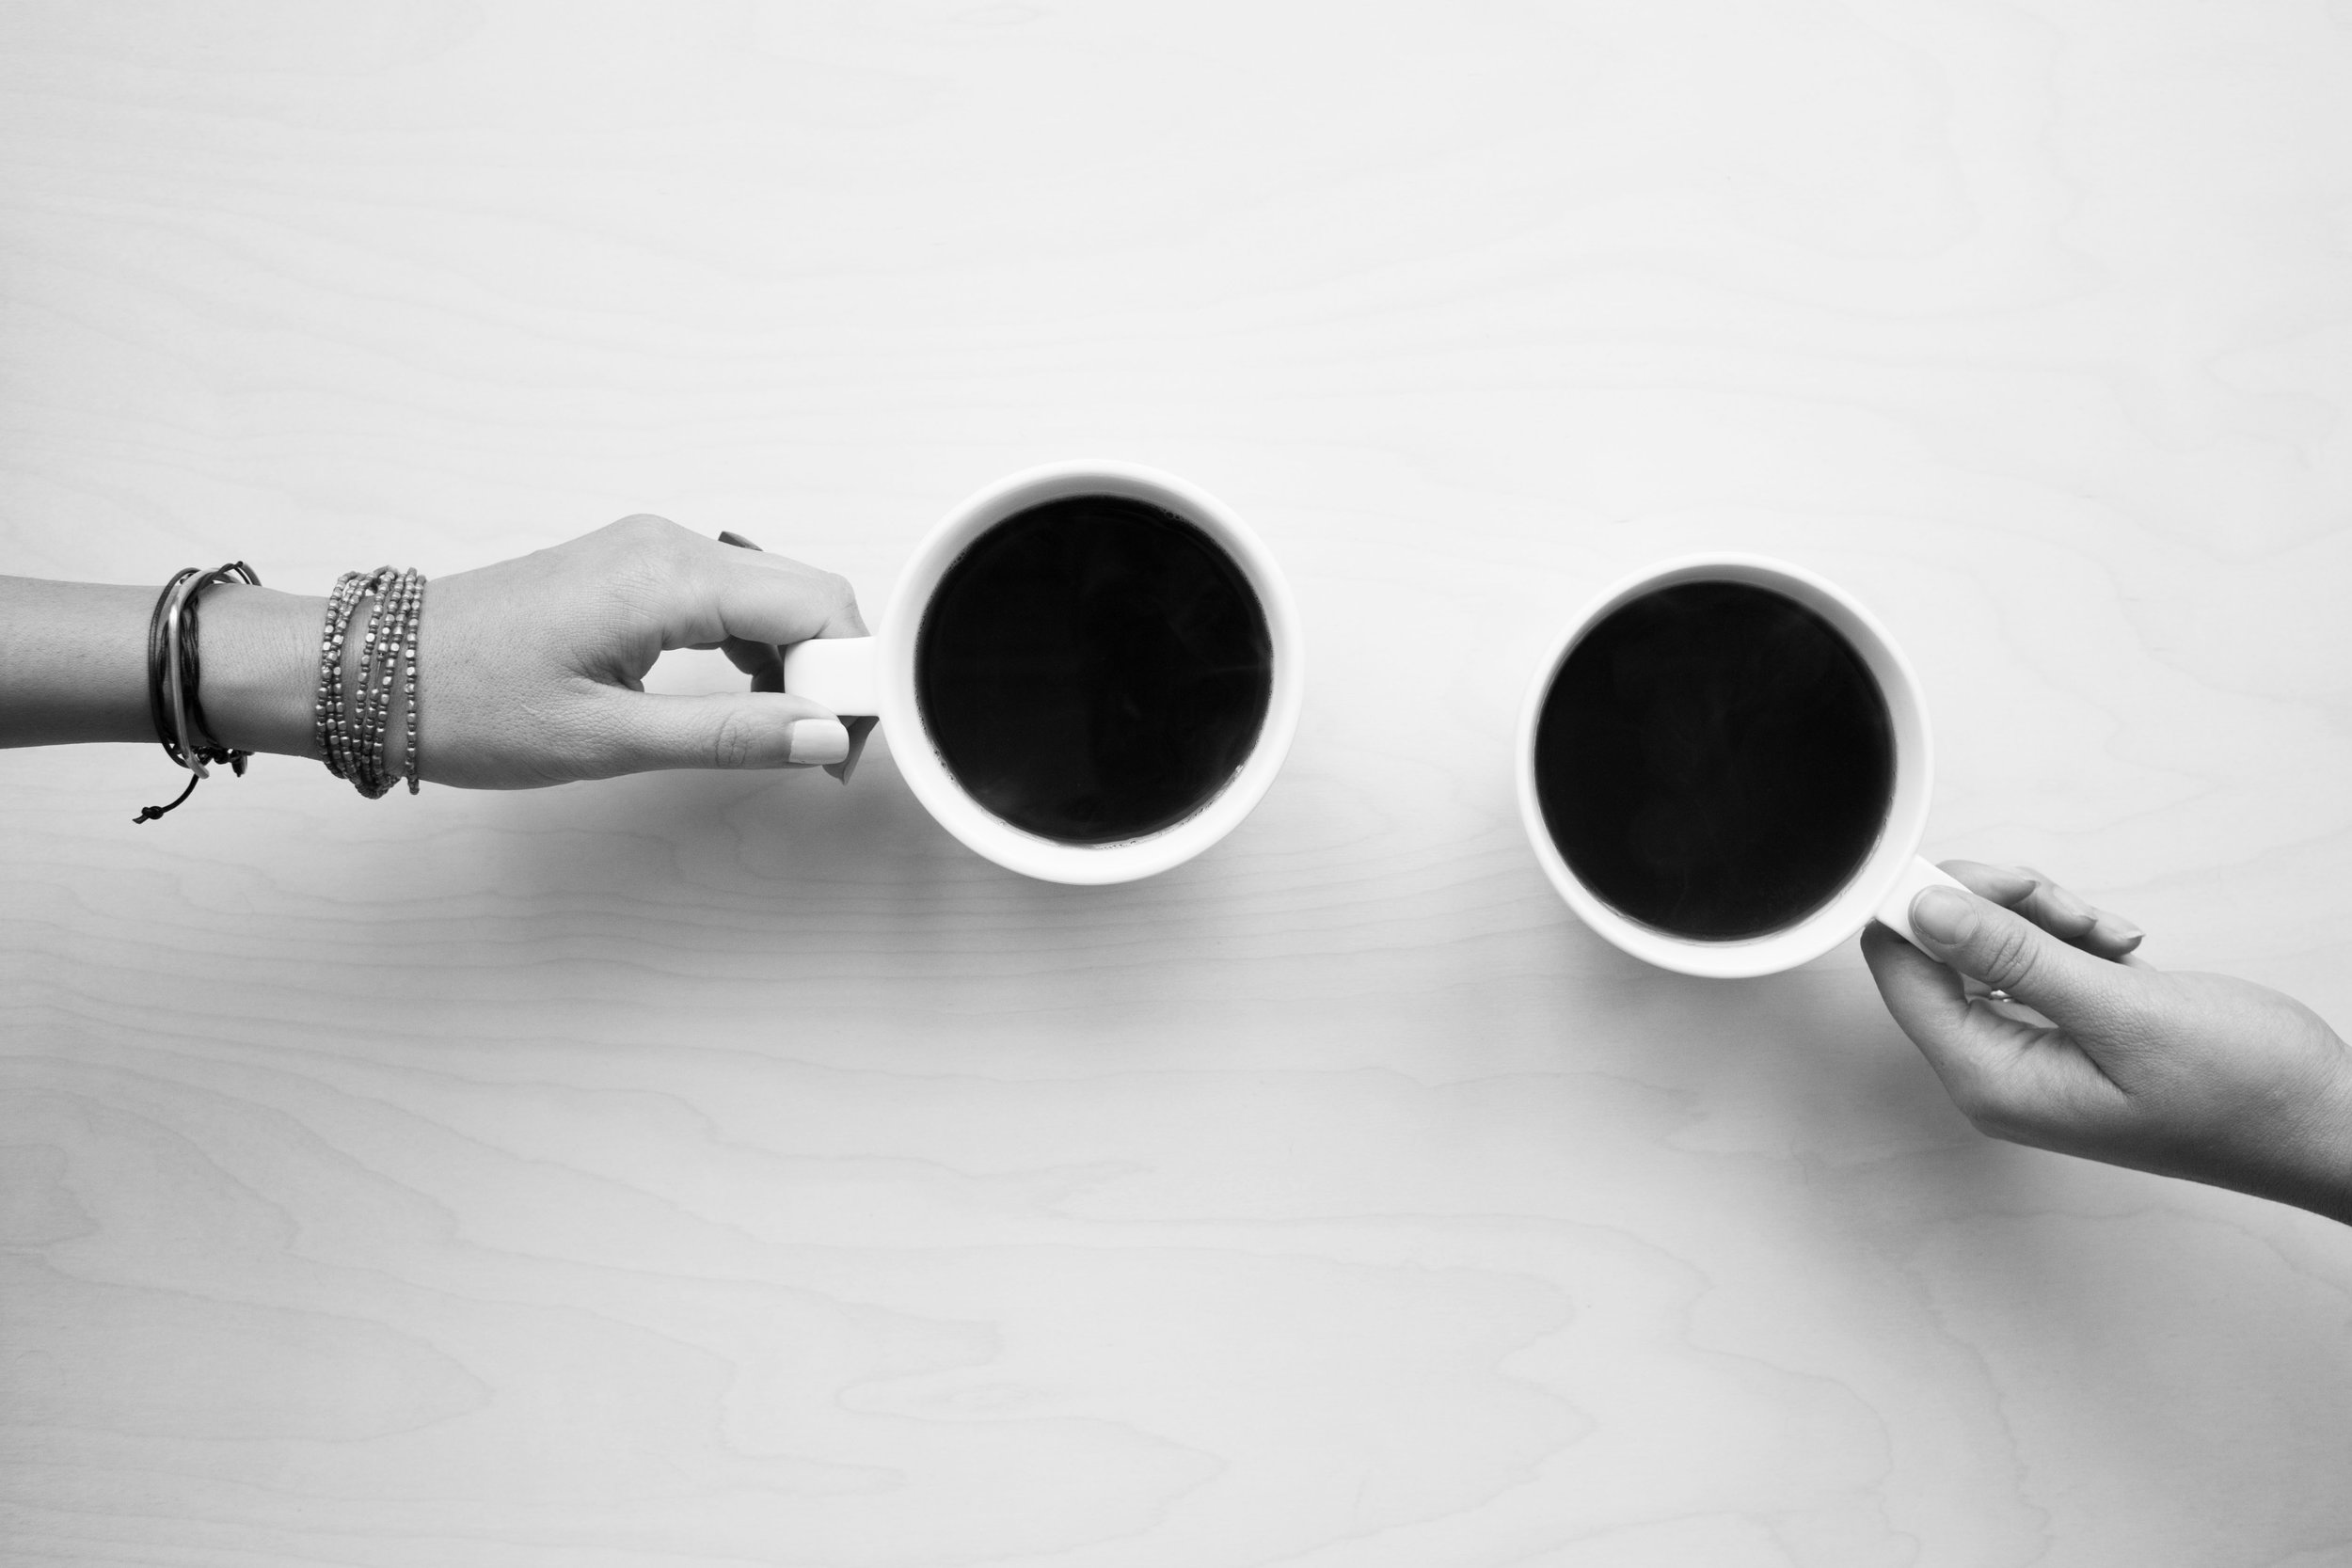 Two hands hold two cups of coffee from opposite sides of a table, seen from above